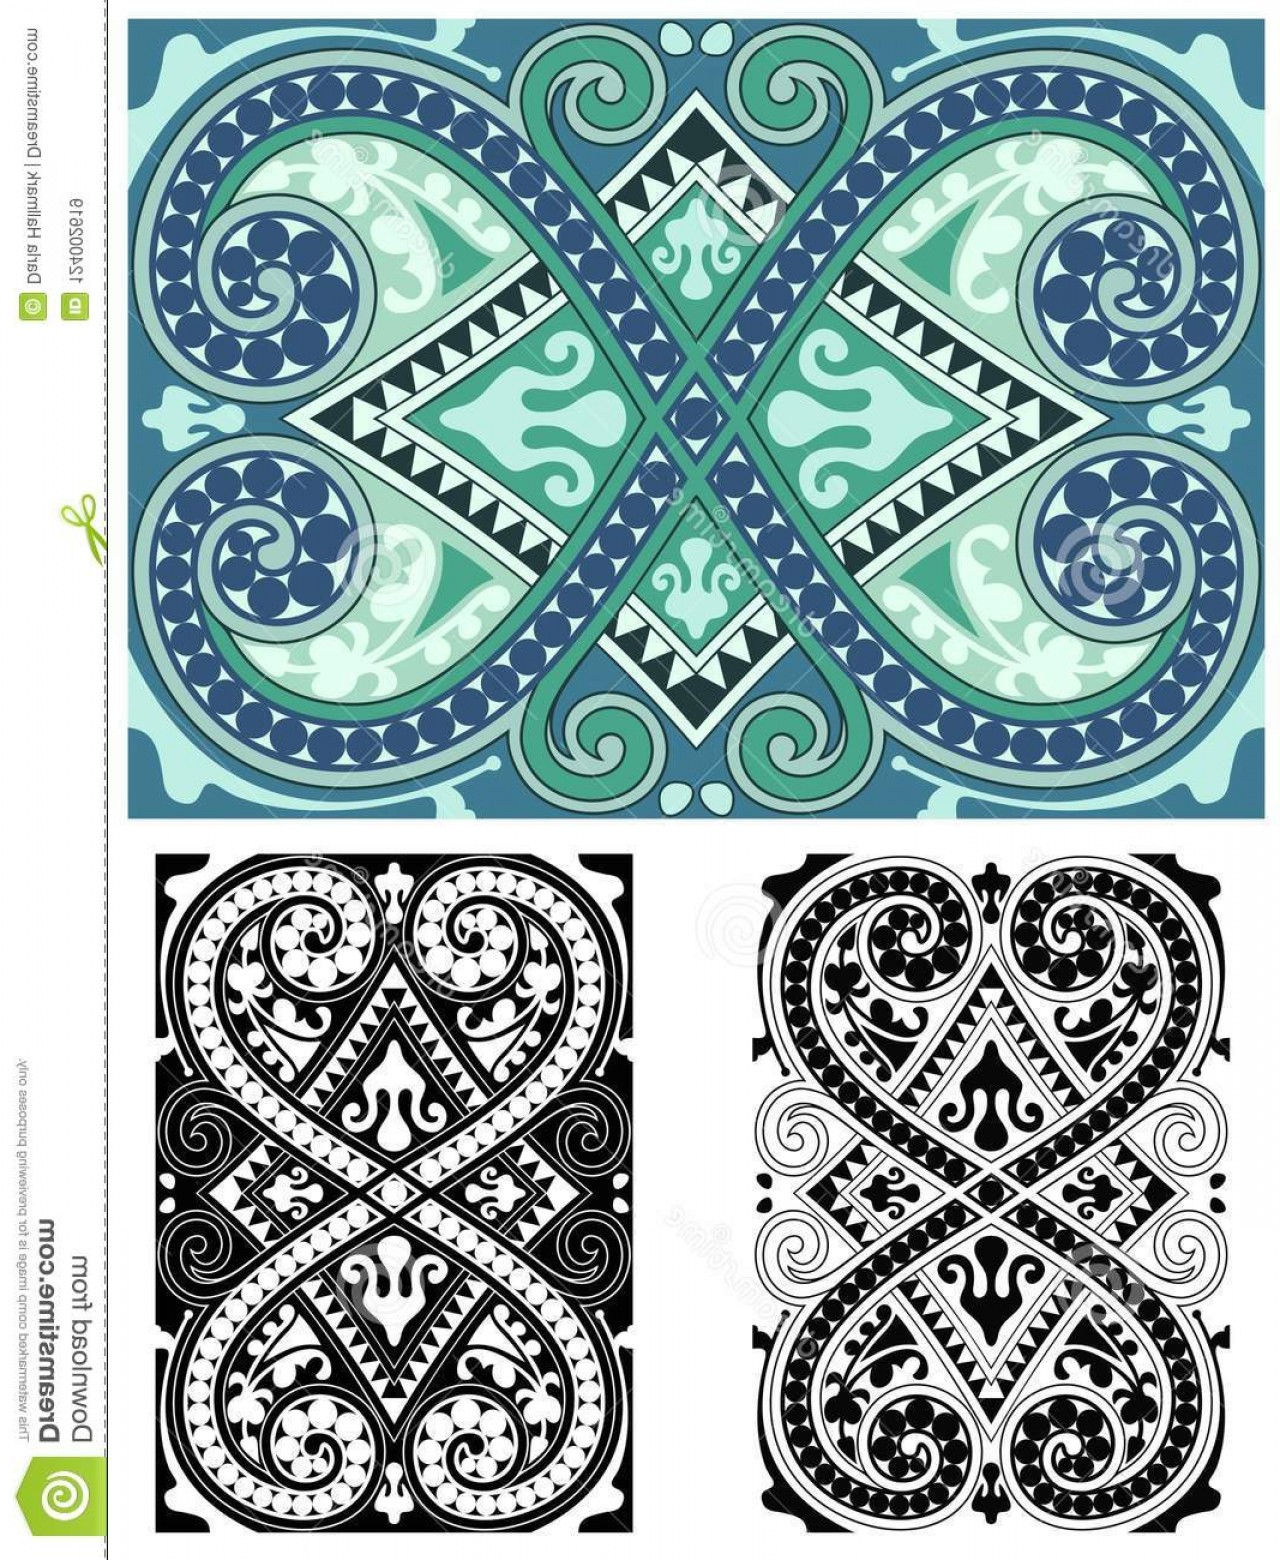 Aqua Victorian Medallions Vectors: Classic Abstract Ornate Tile Seamless Blues Classical Blast Abstract Ornate Seamless Design Classic Victorian Style Comes Image